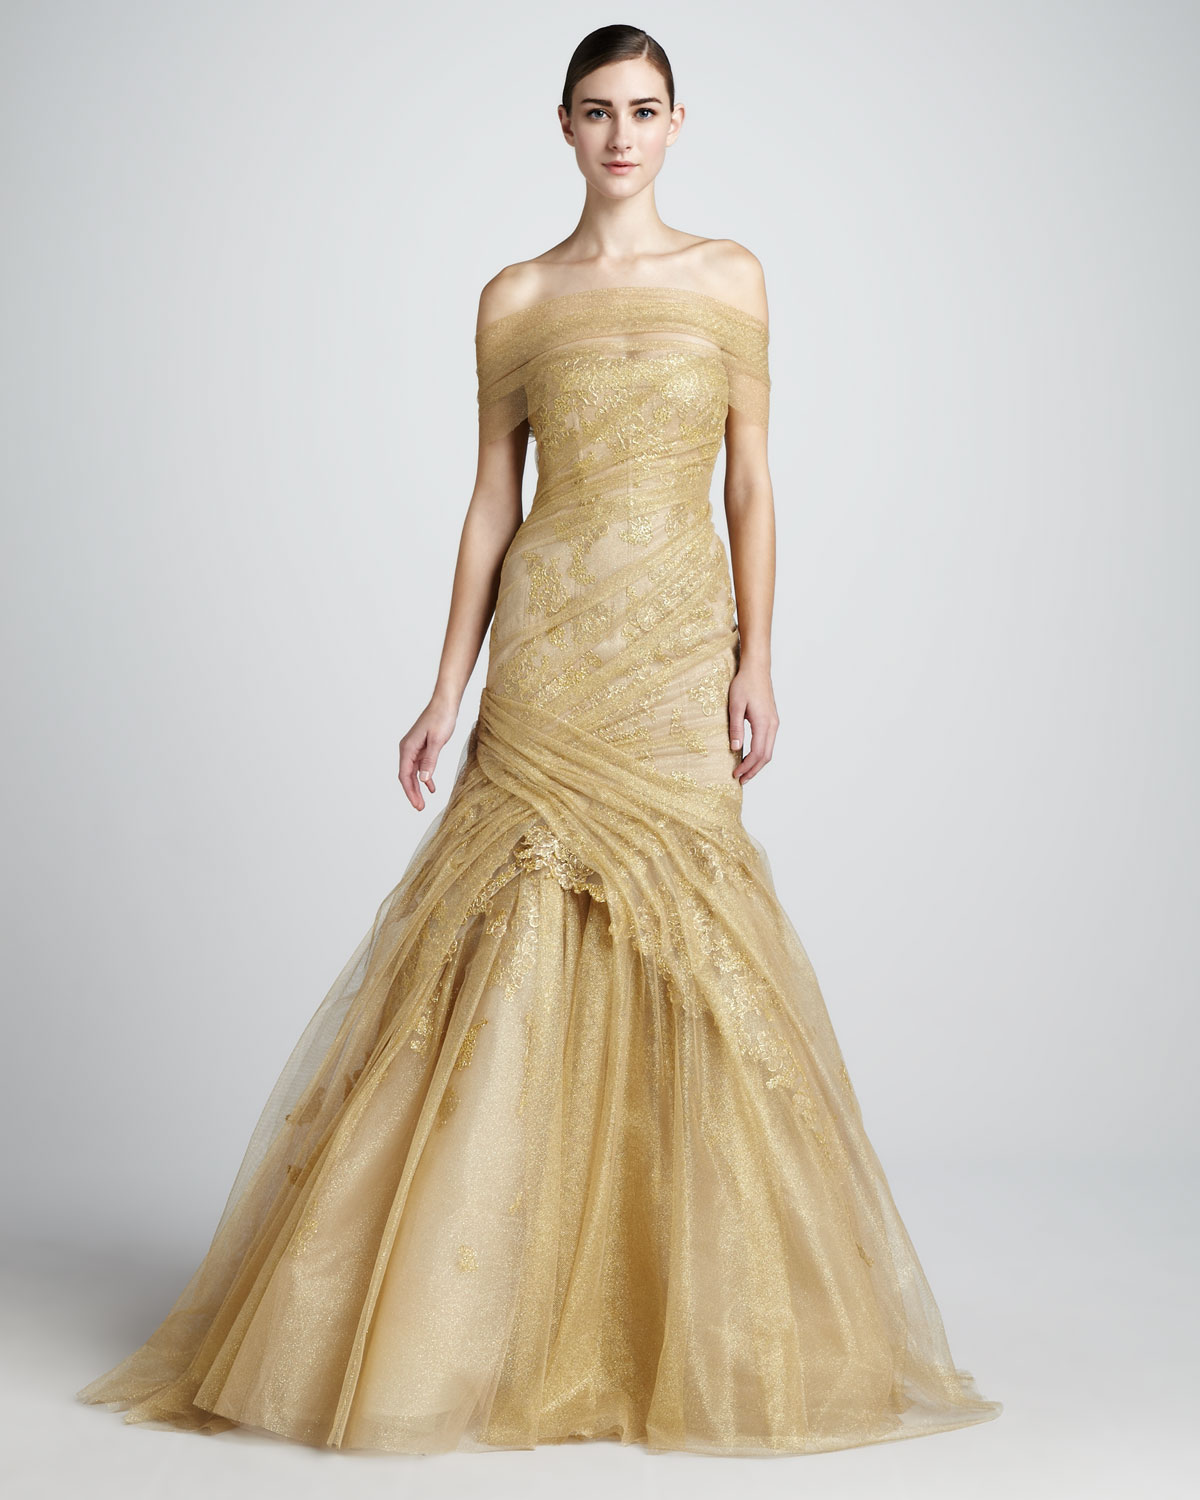 Lyst - Monique Lhuillier Ruchedlace Trumpet Gown in Metallic